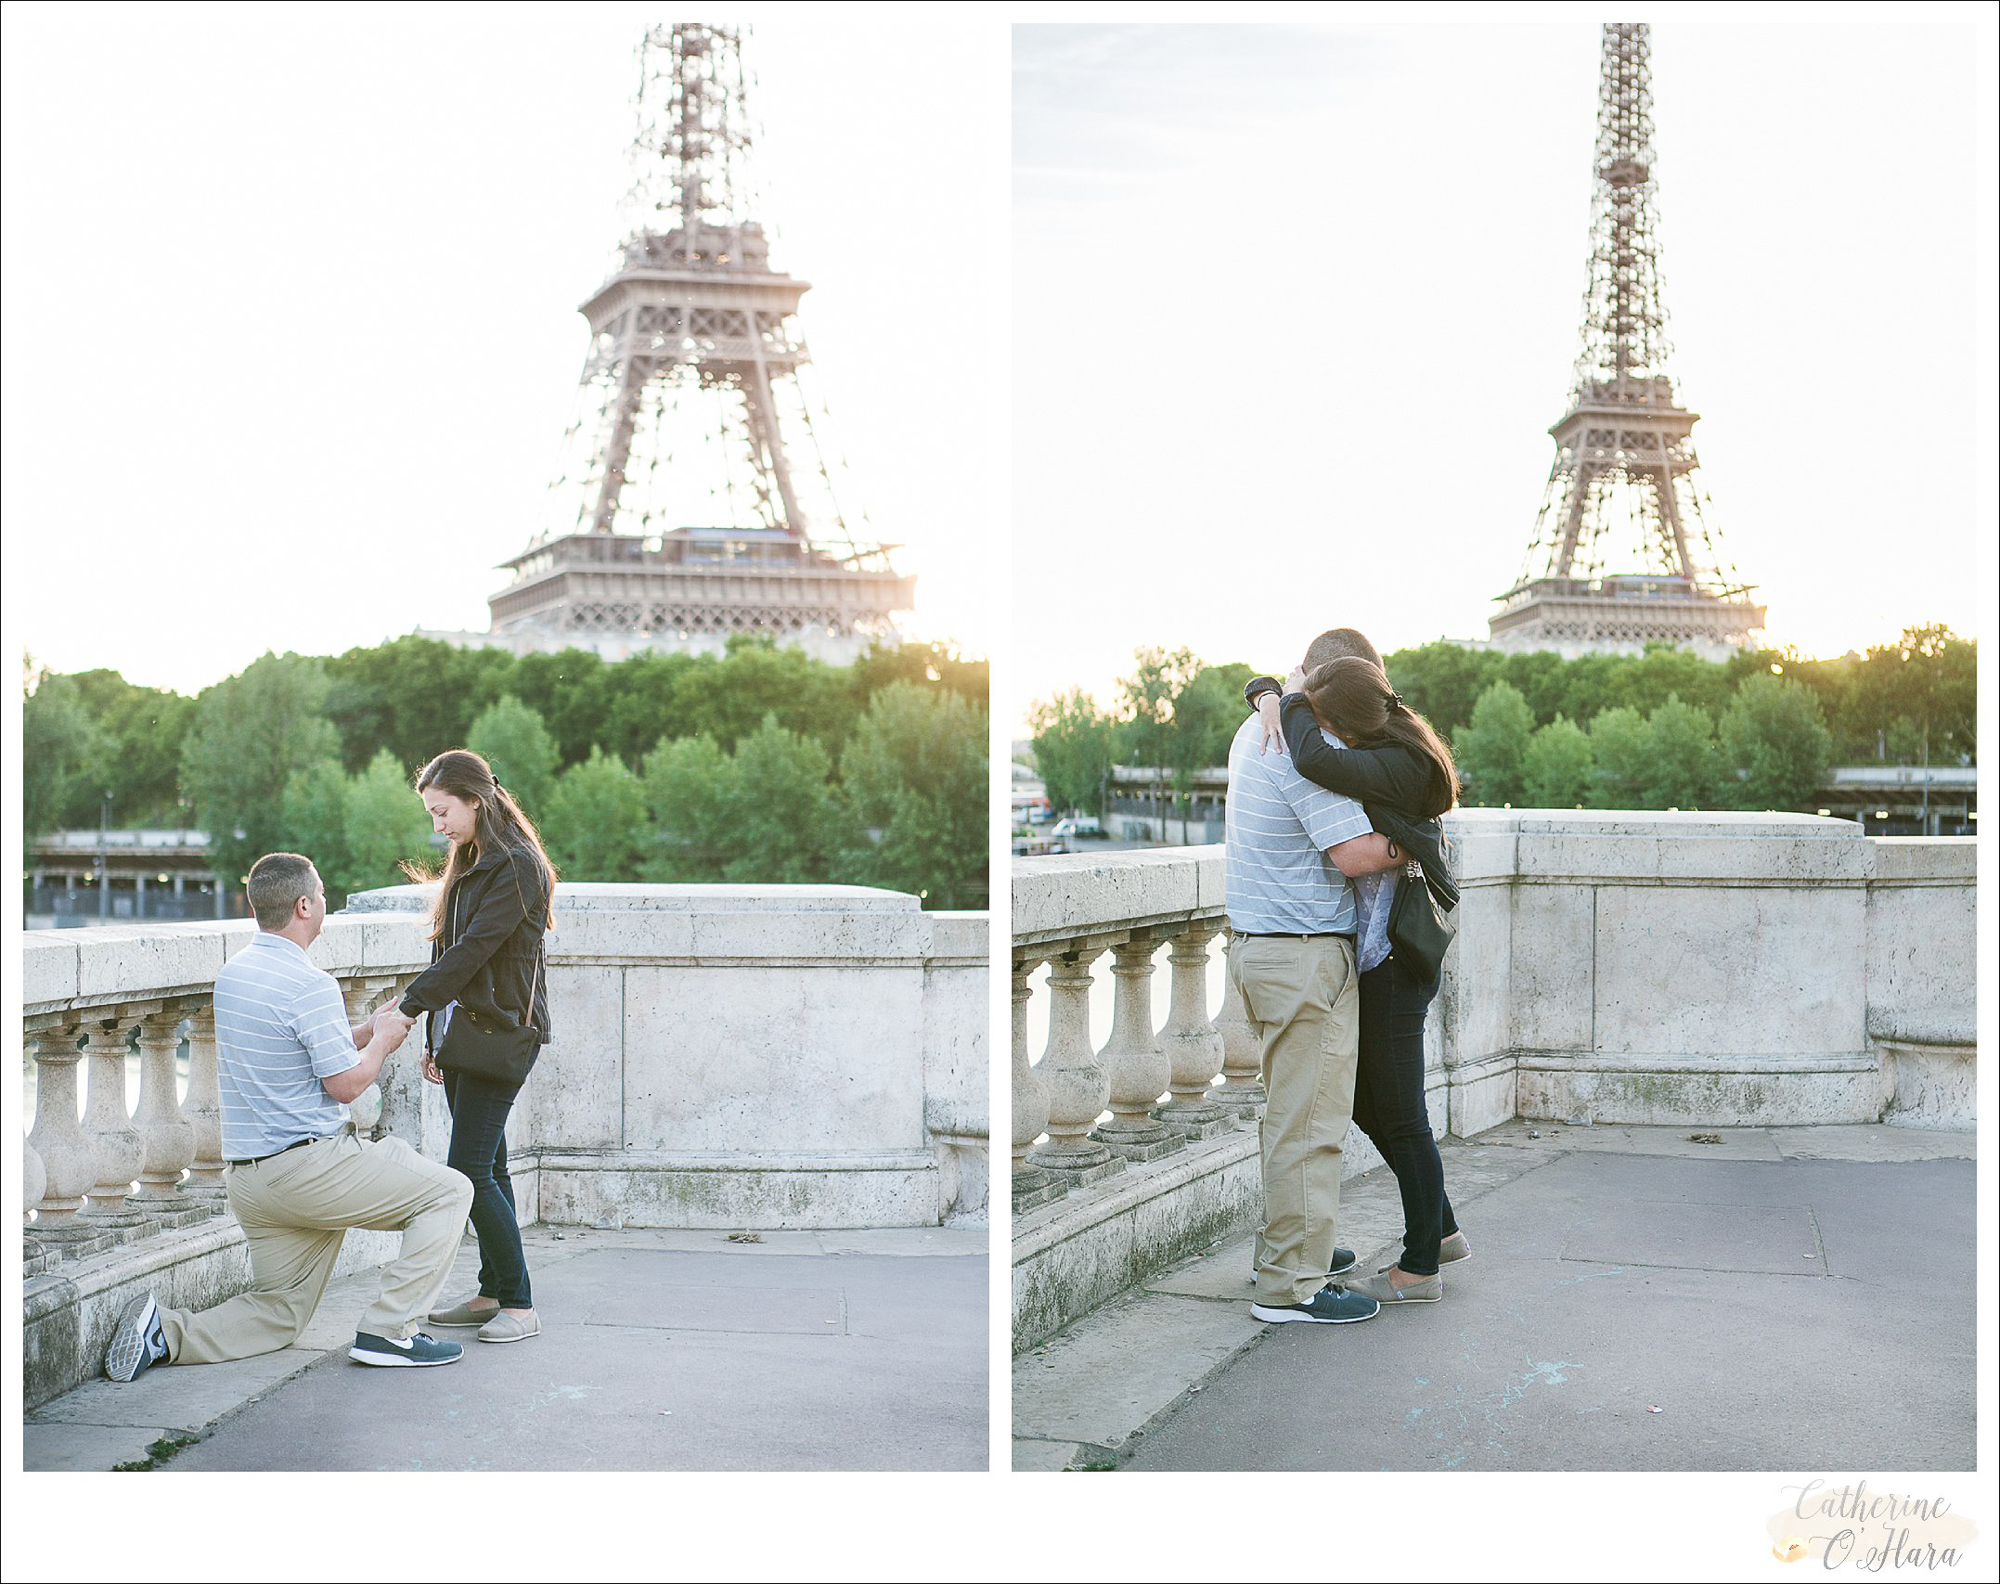 surprise proposal engagement photographer paris france-14.jpg